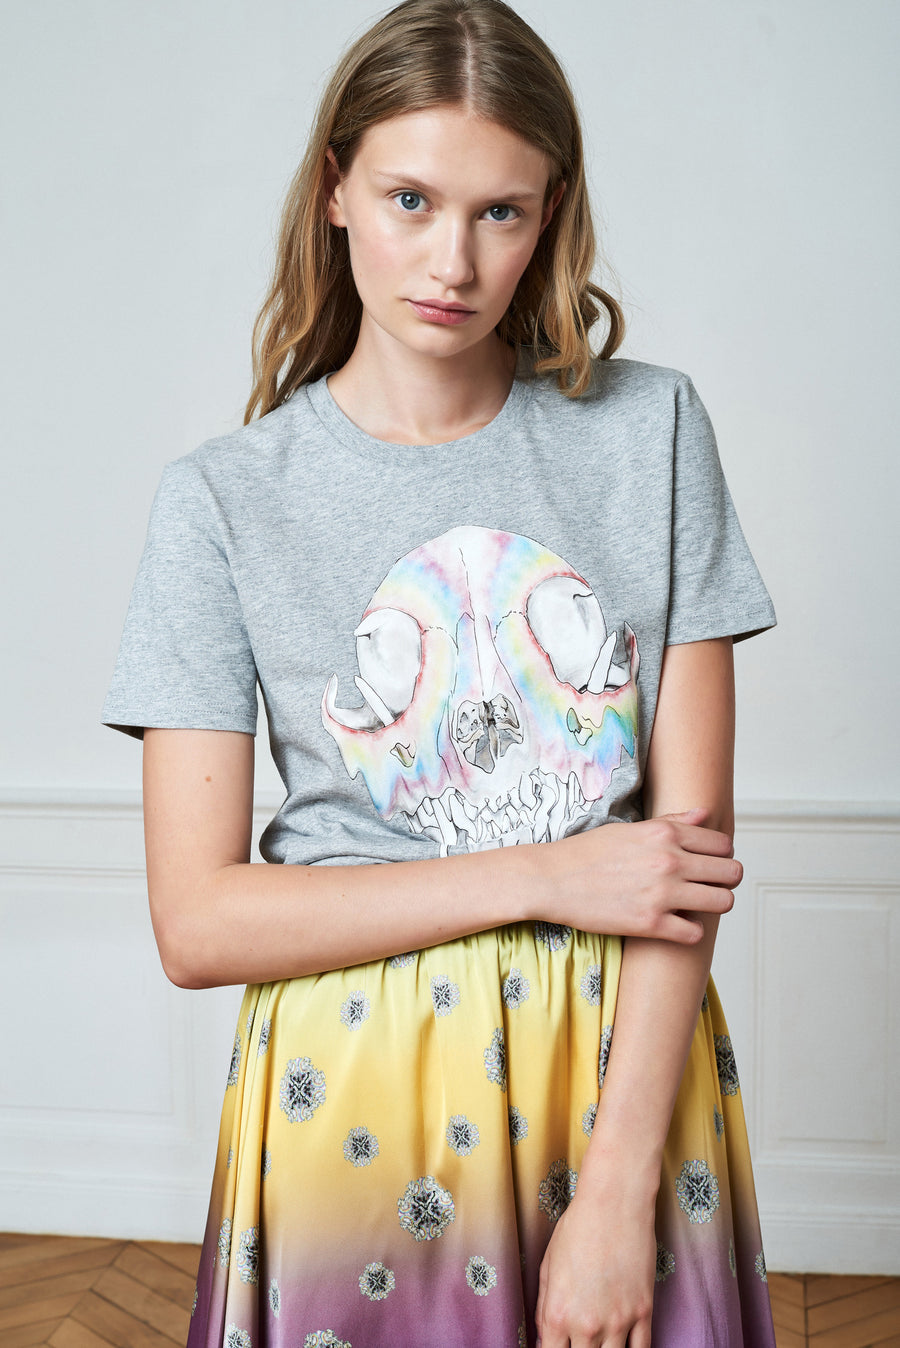 Graphic Printed T-shirt and Gradient Mid-High Printed Skirt